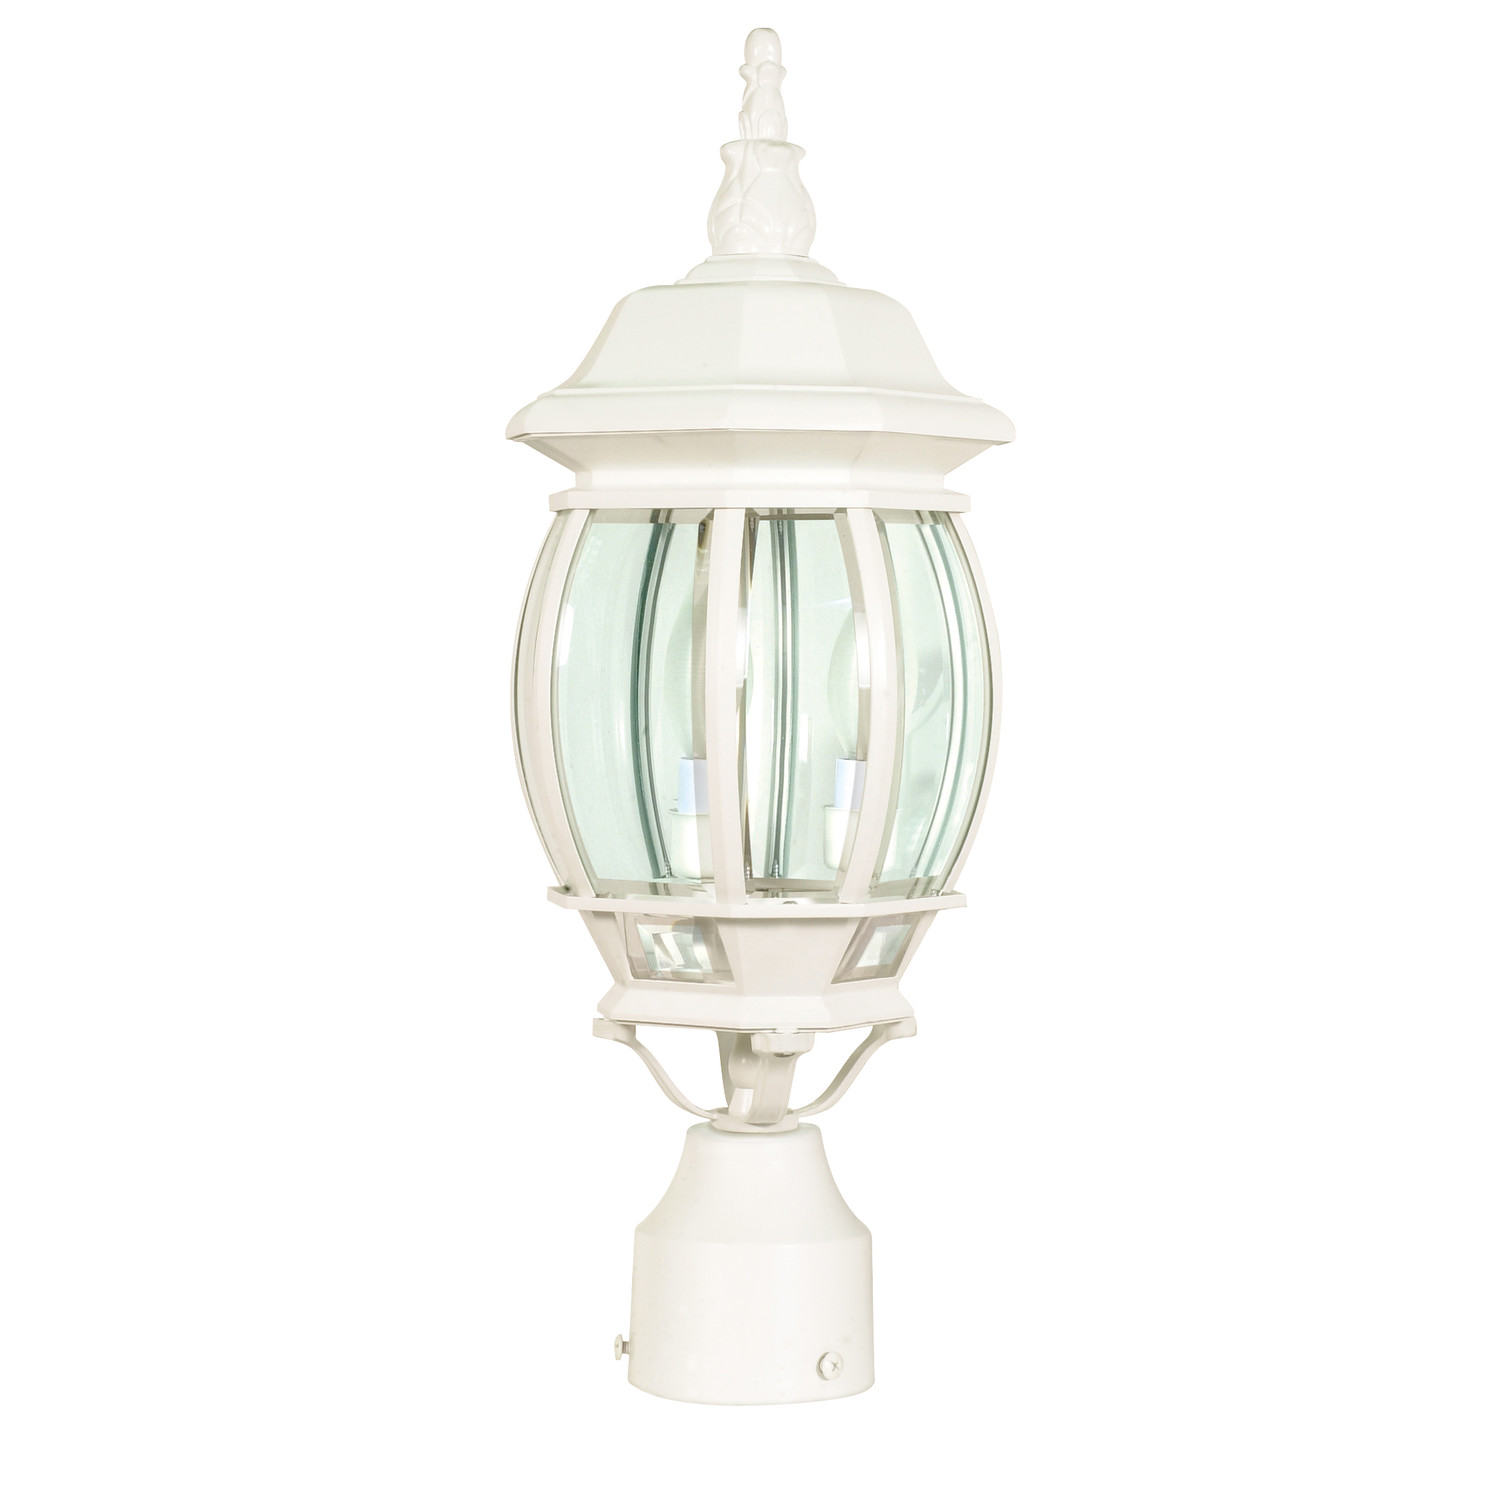 Nuvo Lighting Central 3 Light Post Lantern for outdor lighting ideas